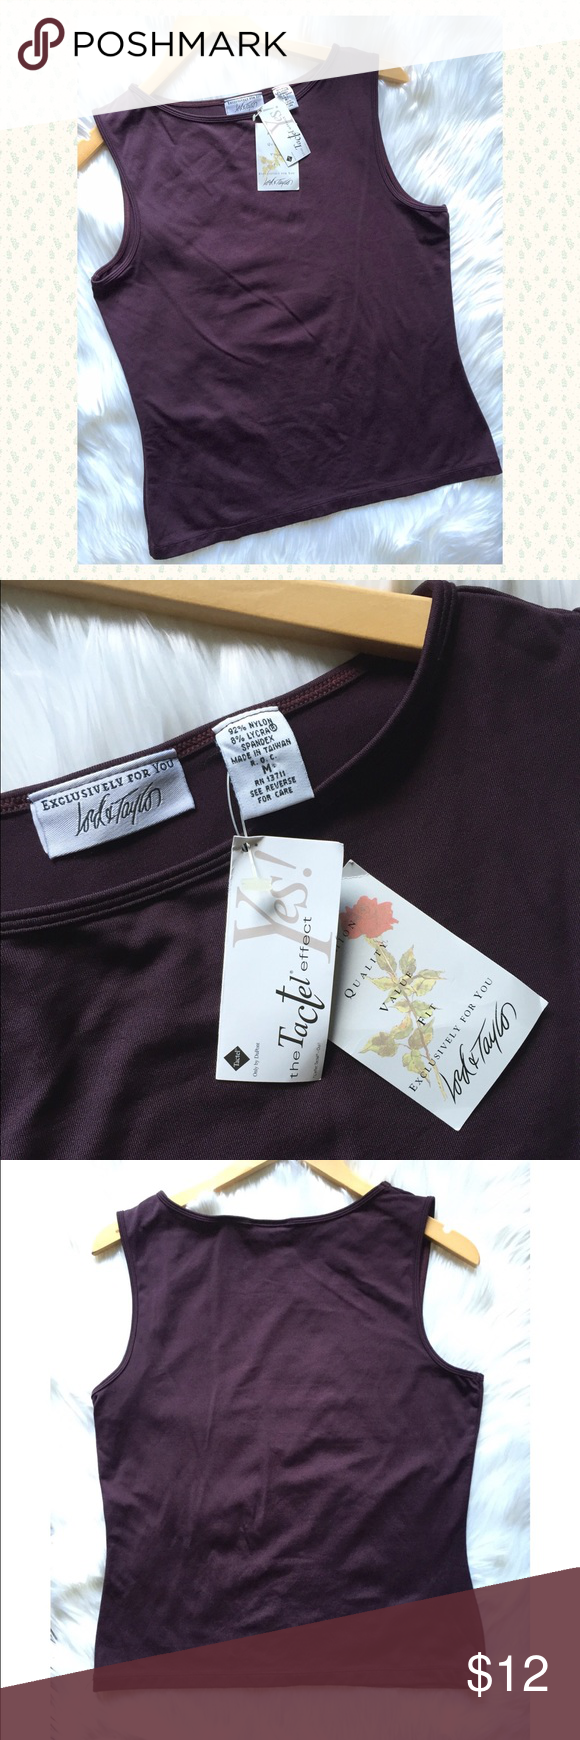 Lord & Taylor eggplant color shell top NWT⚡️ NWT versatile eggplant purple satiny feel shell top from Lord & Taylor. Size M, may fit up to a smaller L as well. 22in. long, chest 18in. across. 92% nylon/8% spandex blend. Lord & Taylor Tops Blouses